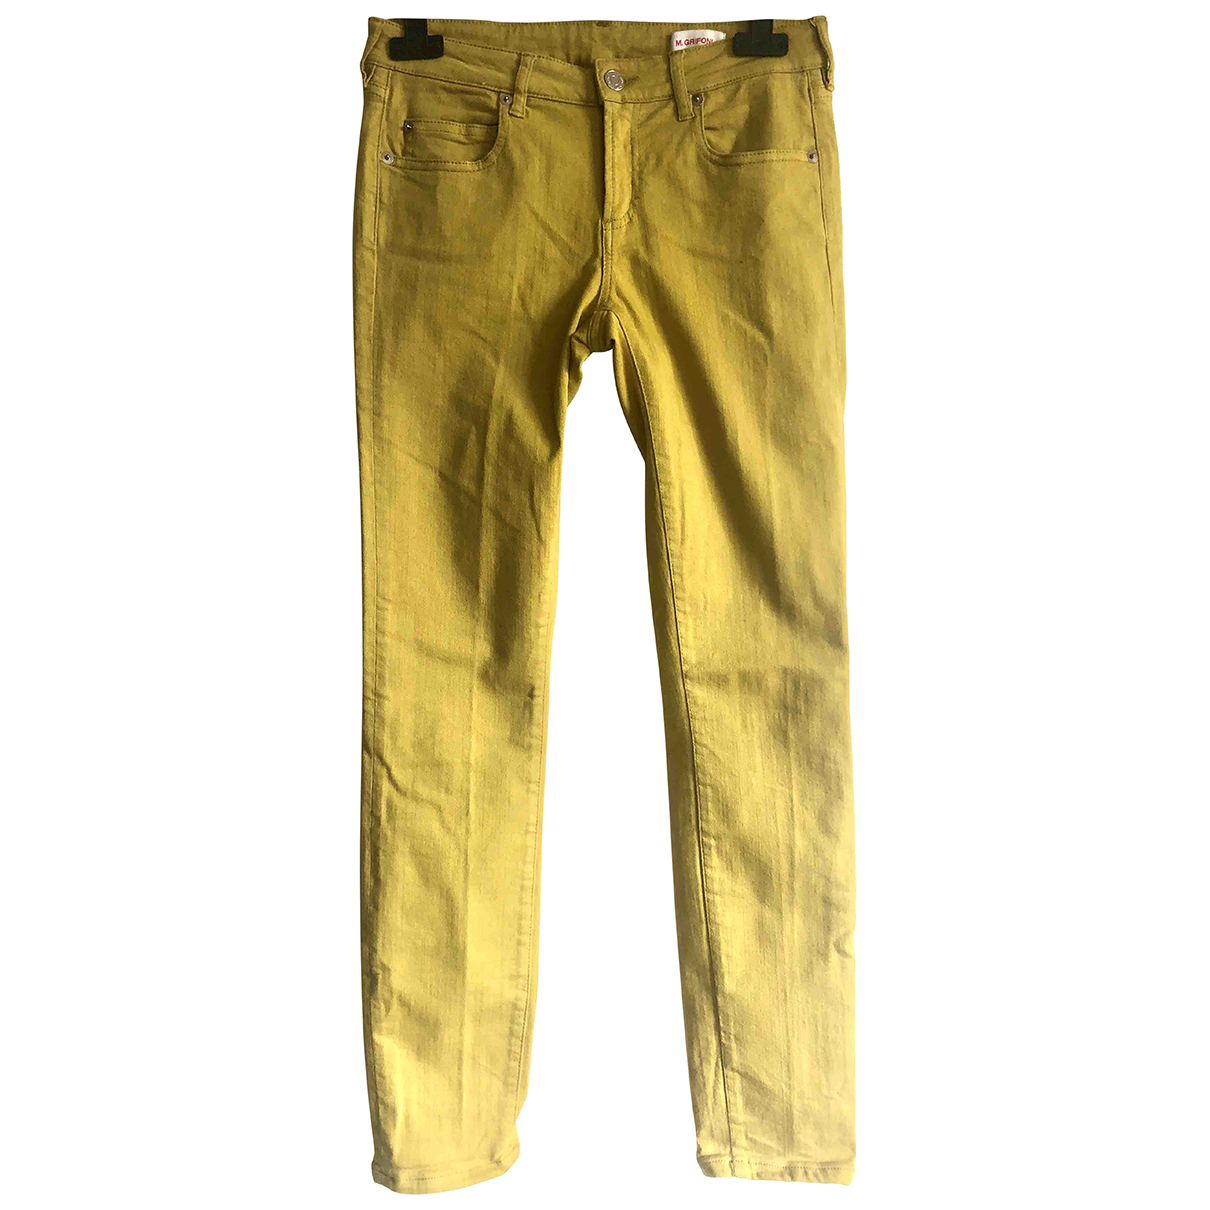 Mauro Grifoni N Cotton - elasthane Jeans for Women 27 US